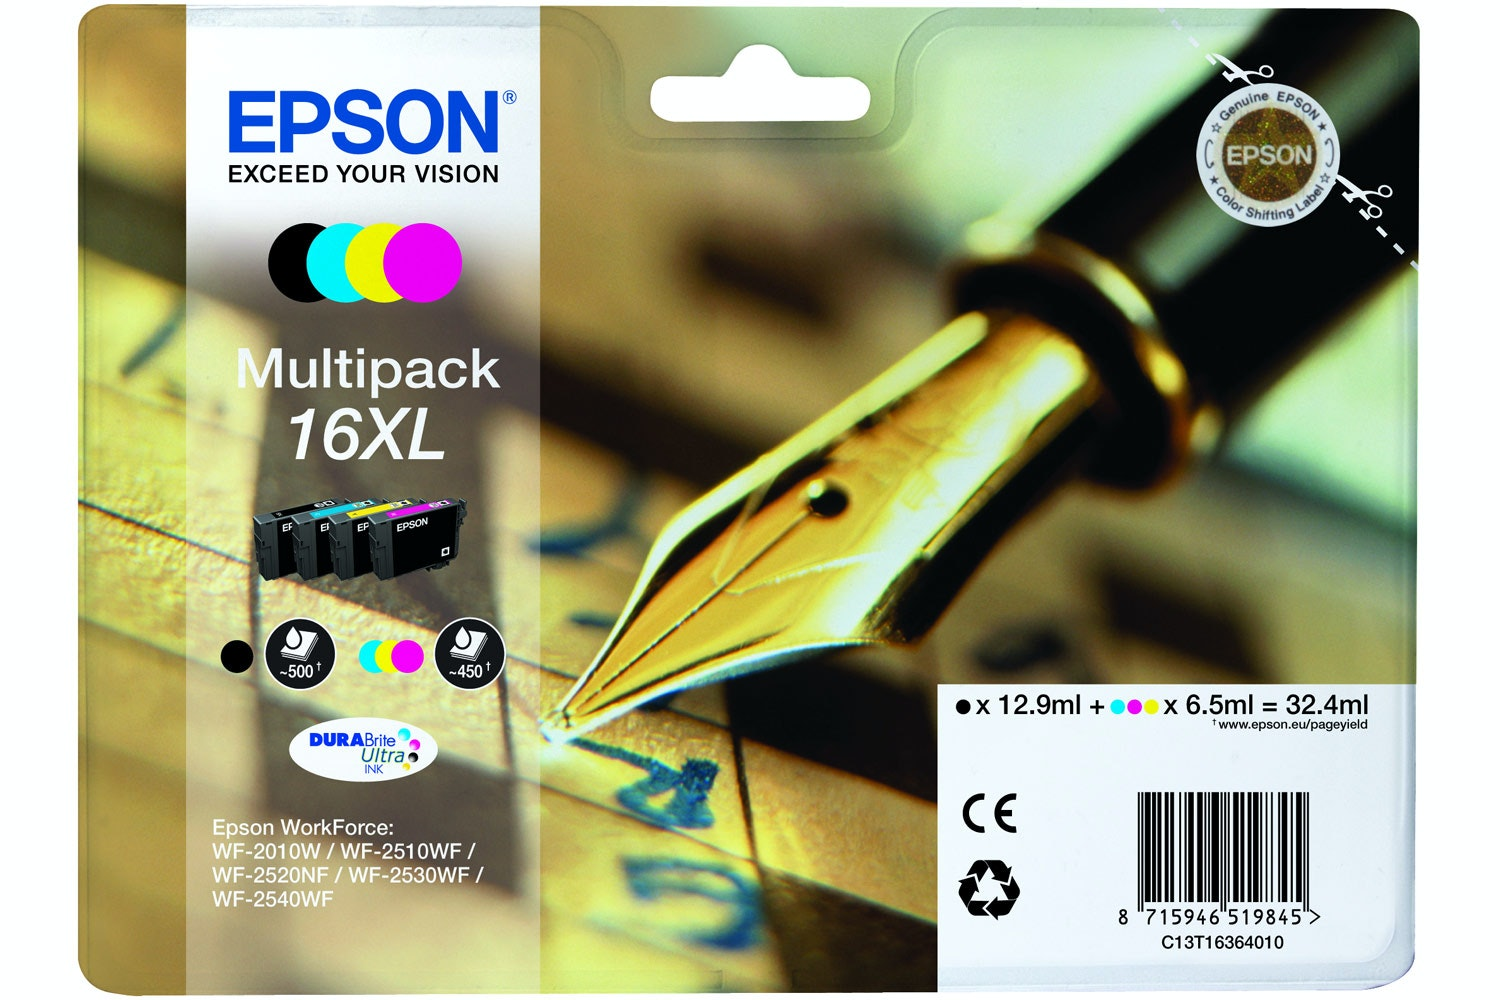 Epson XL Pen and Crossword 4 Colour Multipack Ink